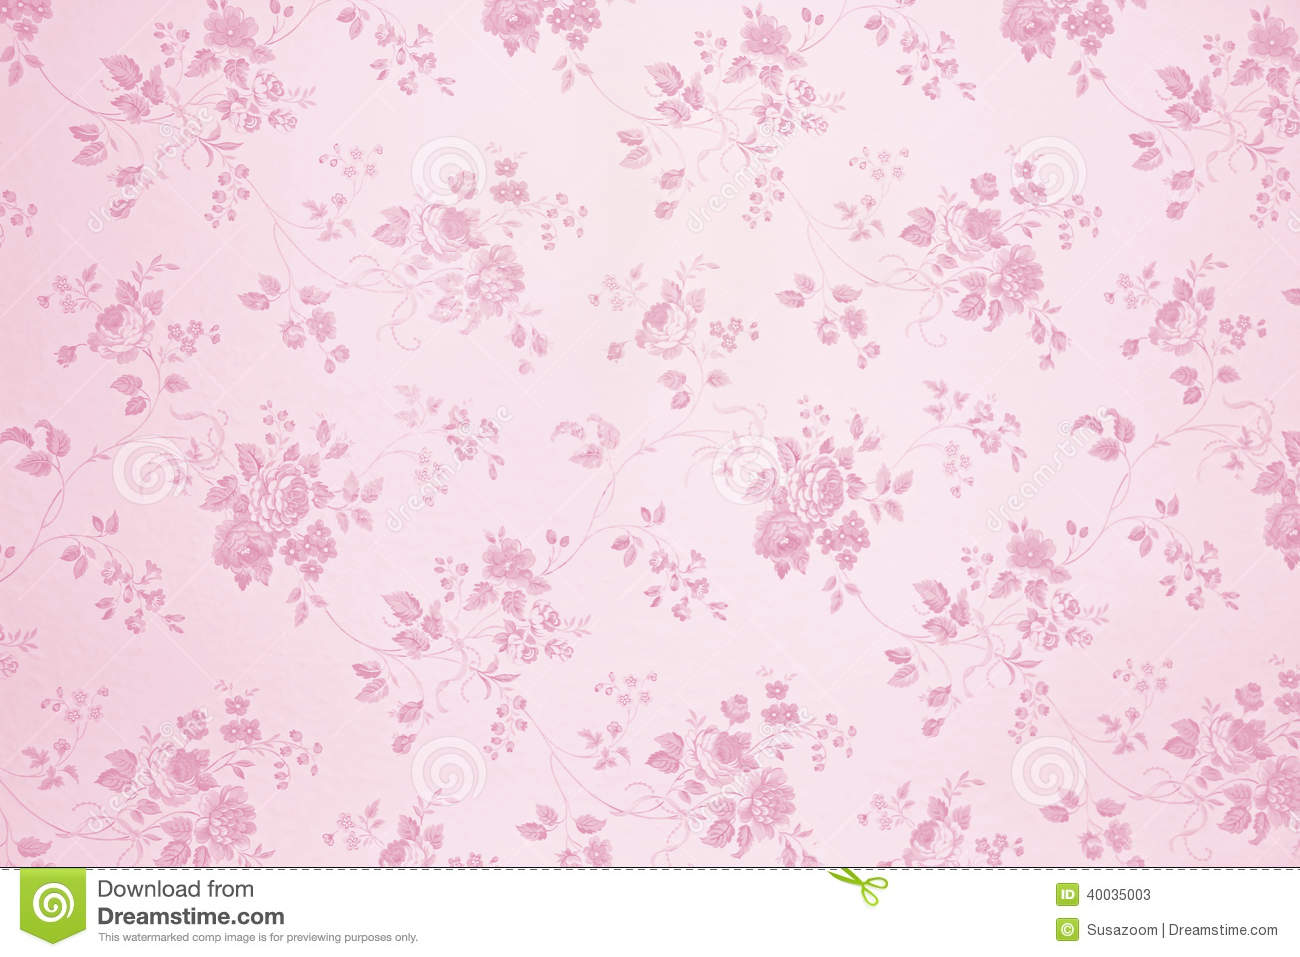 Pink Flower Designs Wallpapers Hd Is Cool Wallpapers